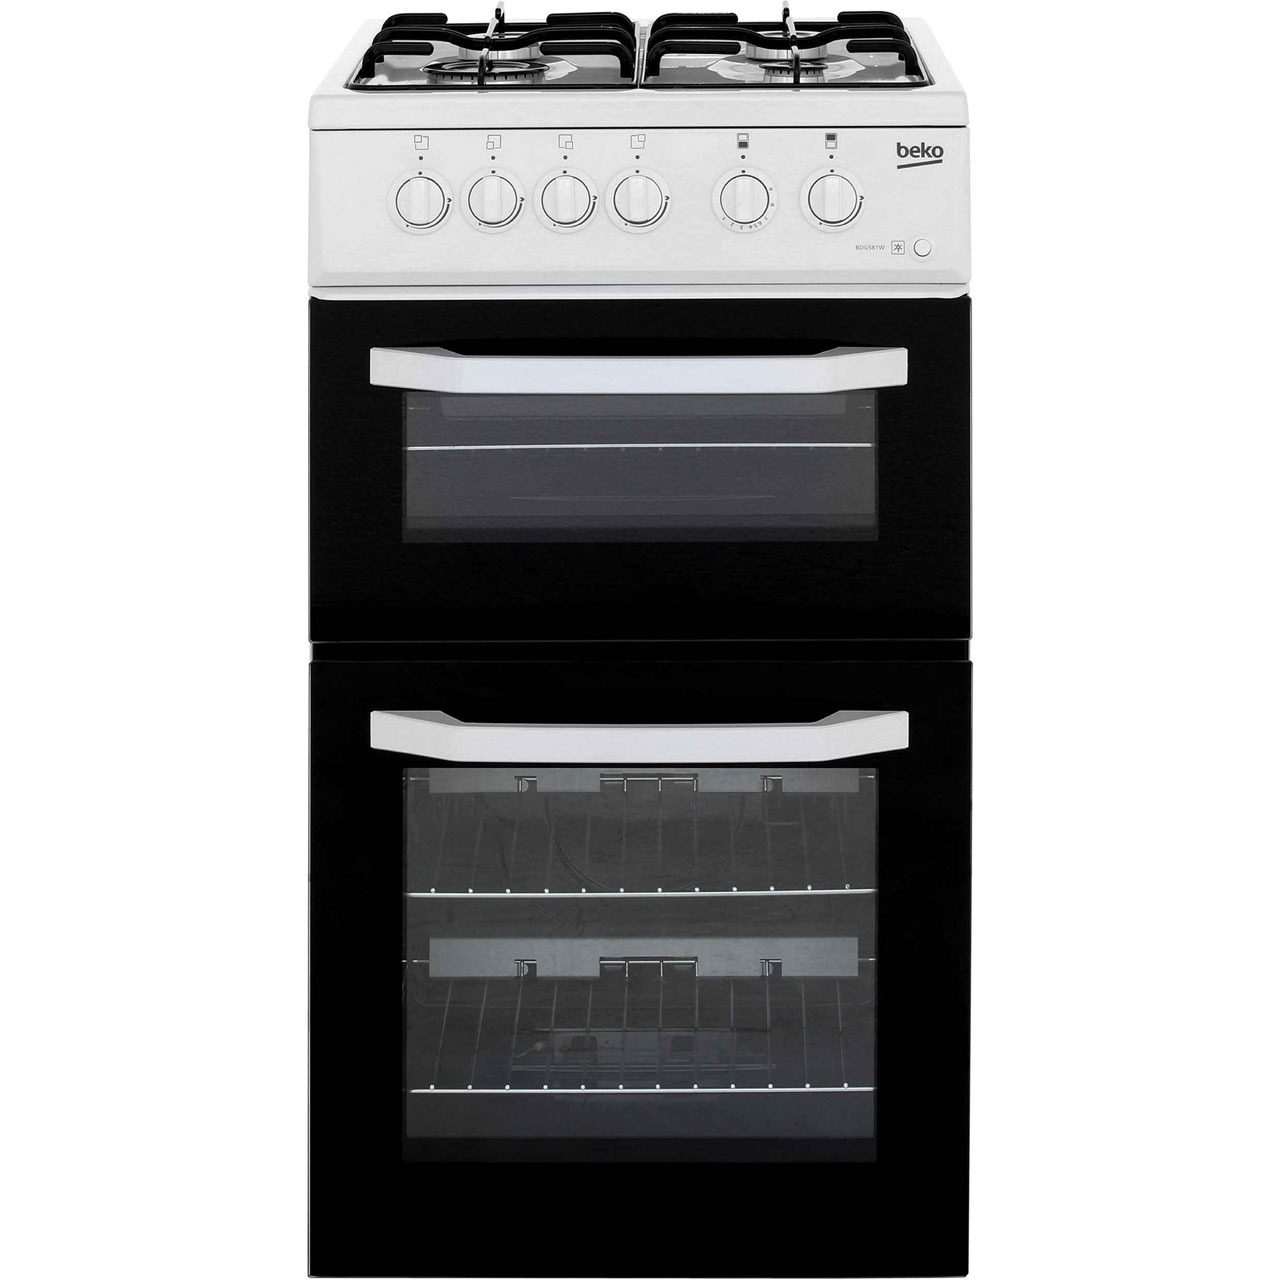 Beko BDG581W Free Standing Cooker in White